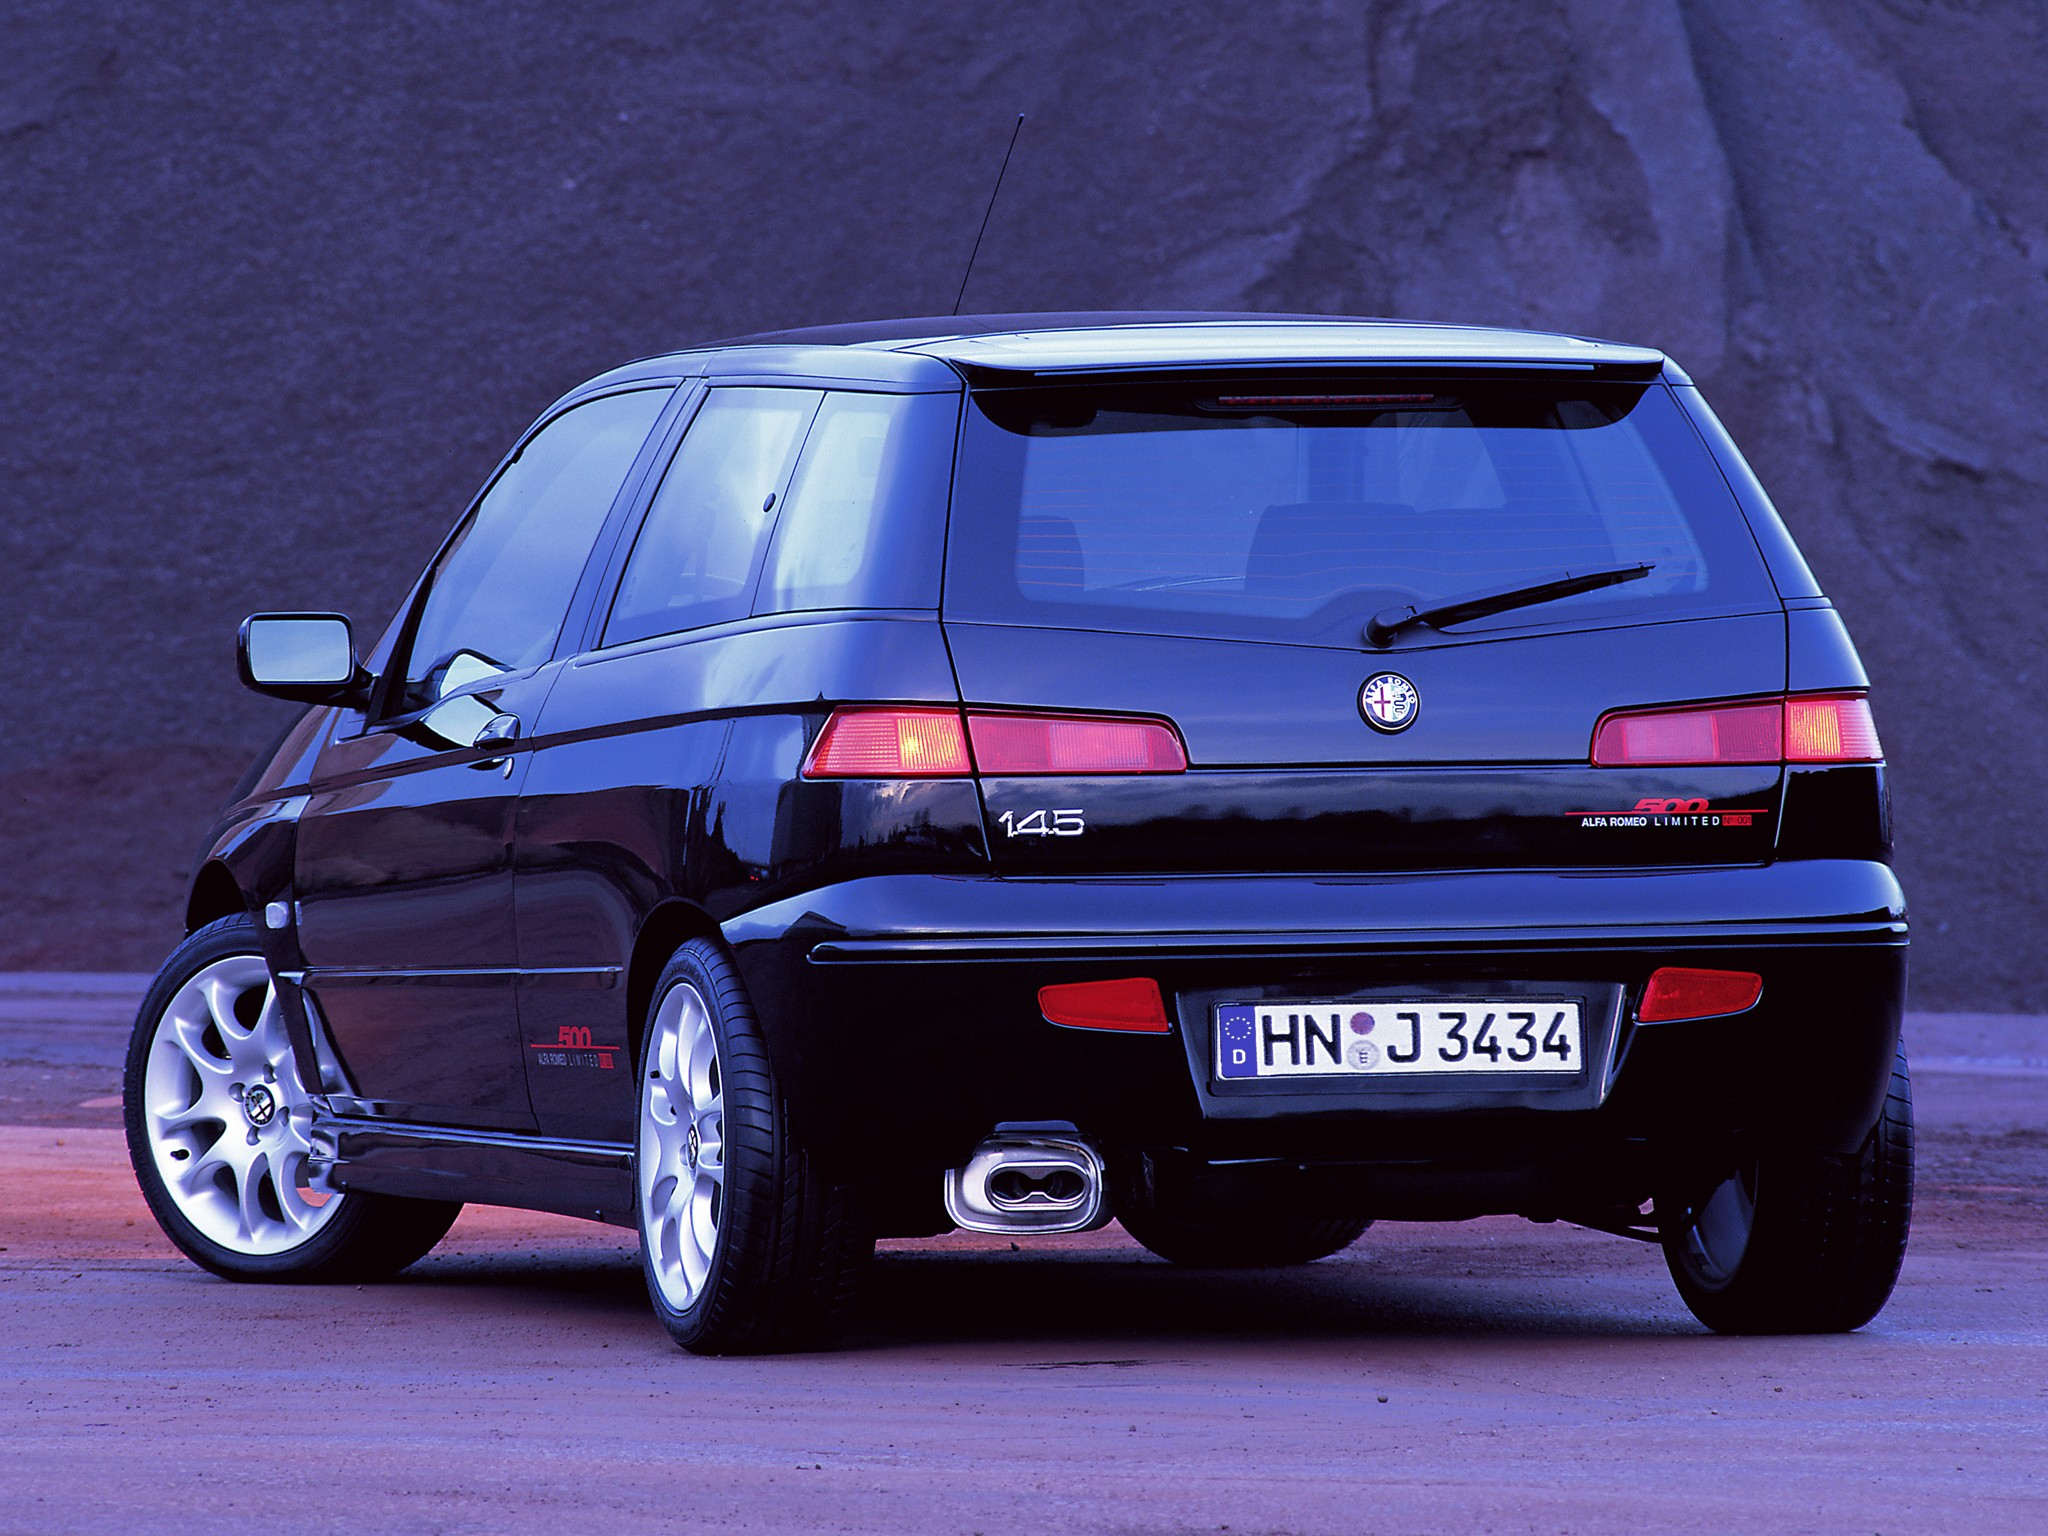 alfa romeo 145 specs photos 1994 1995 1996 1997 1998 1999 2000 autoevolution. Black Bedroom Furniture Sets. Home Design Ideas